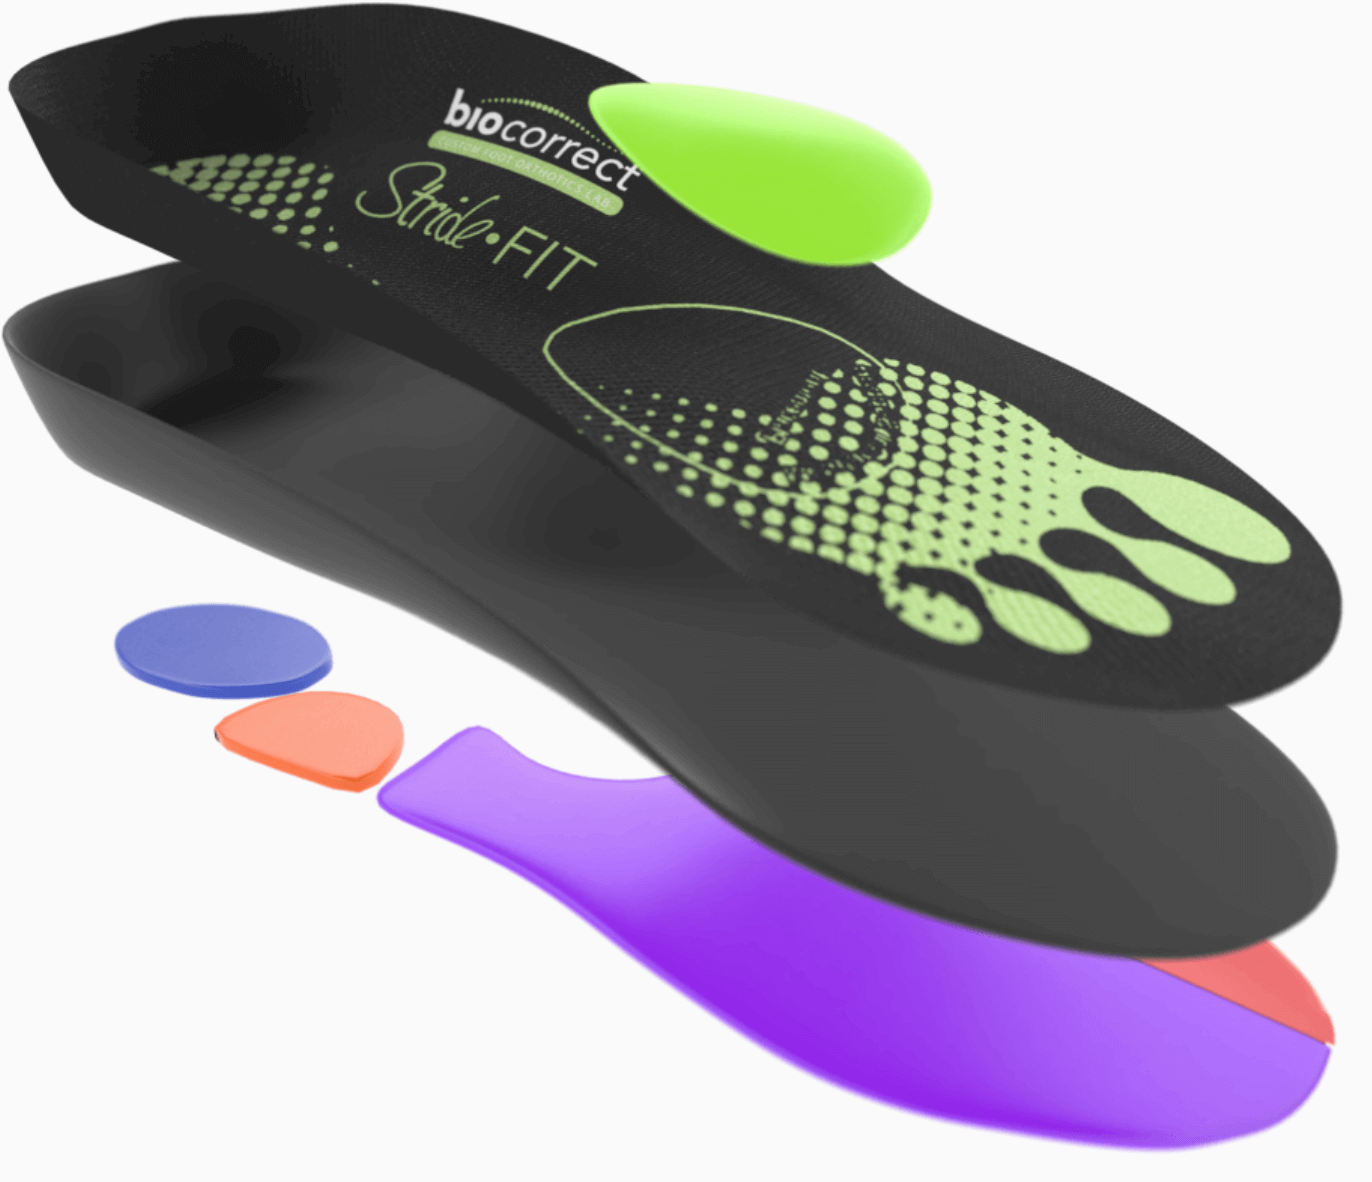 bc2df72b87 Biocorrect | Custom Handcrafted Foot Orthotics